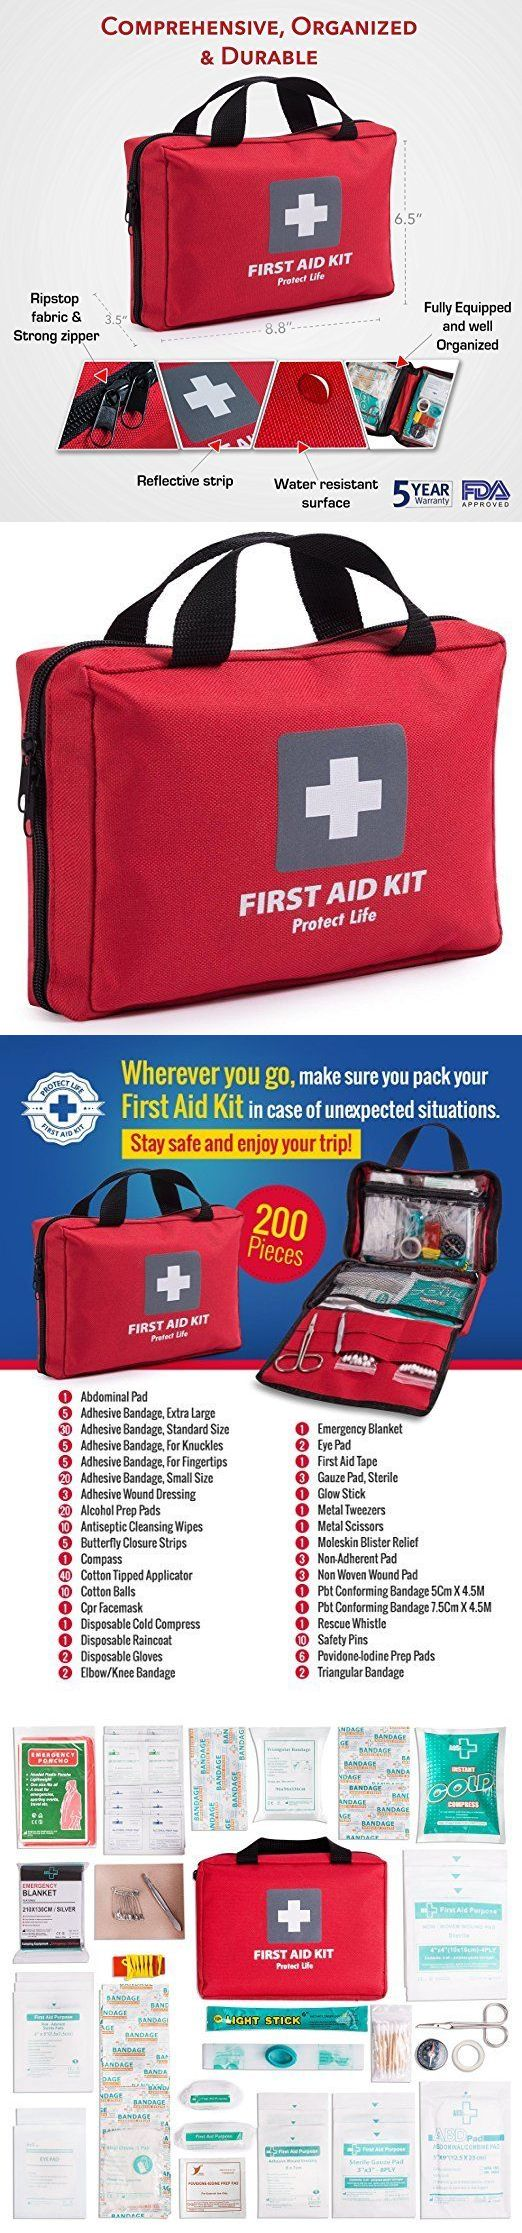 Kits and Bags: First Aid Kit Emergency Survival Essential Supplies Home Travel Office, 200 Pcs -> BUY IT NOW ONLY: $32.5 on eBay!